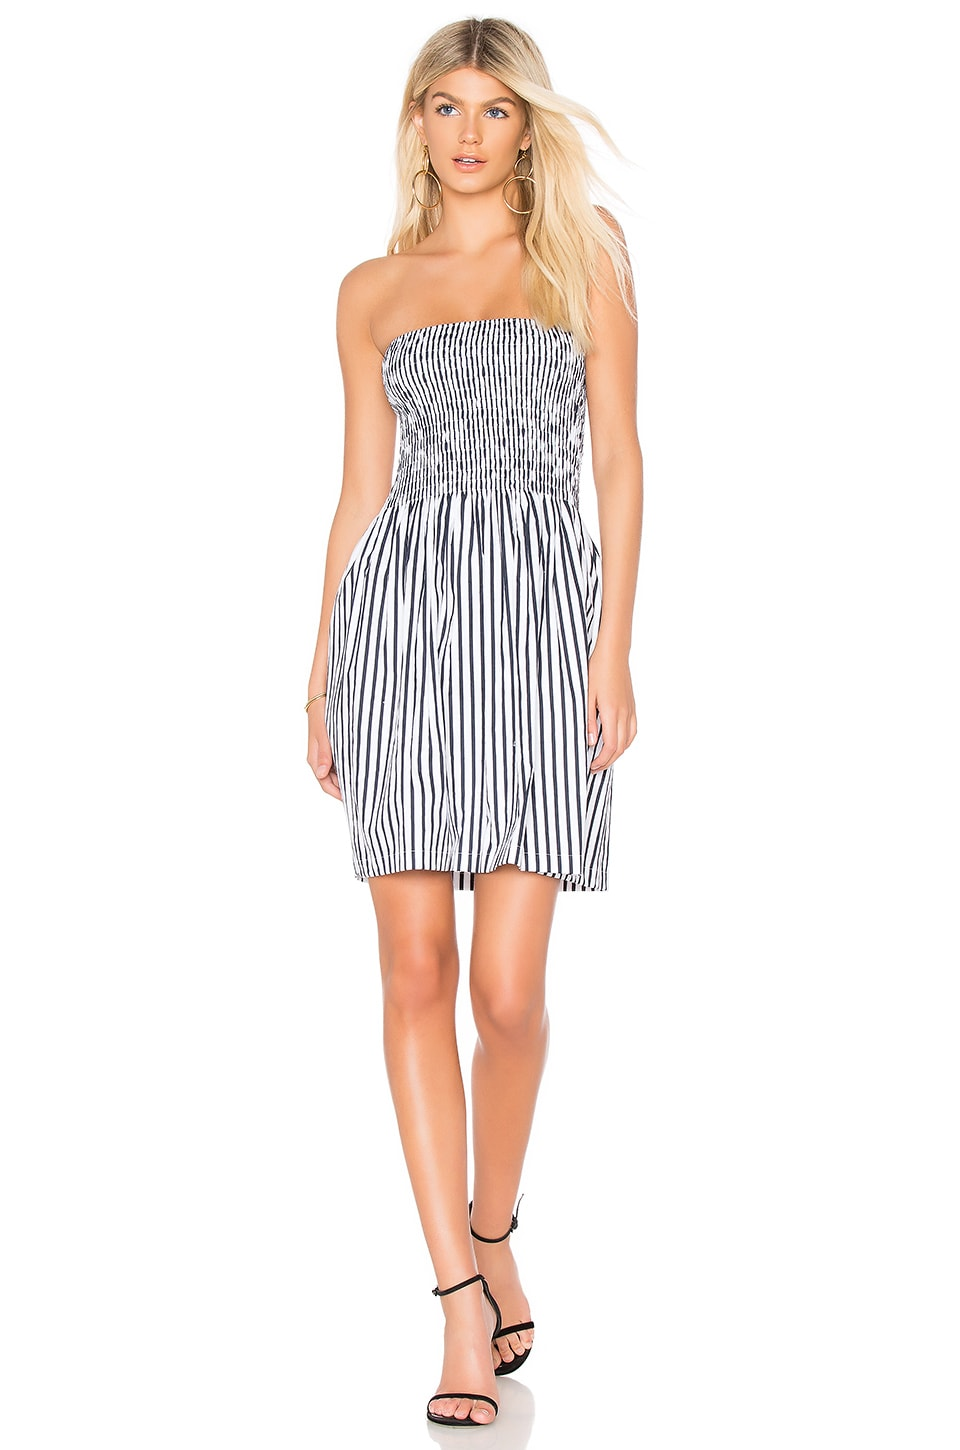 Ruched Mini Dress by ATM Anthony Thomas Melillo